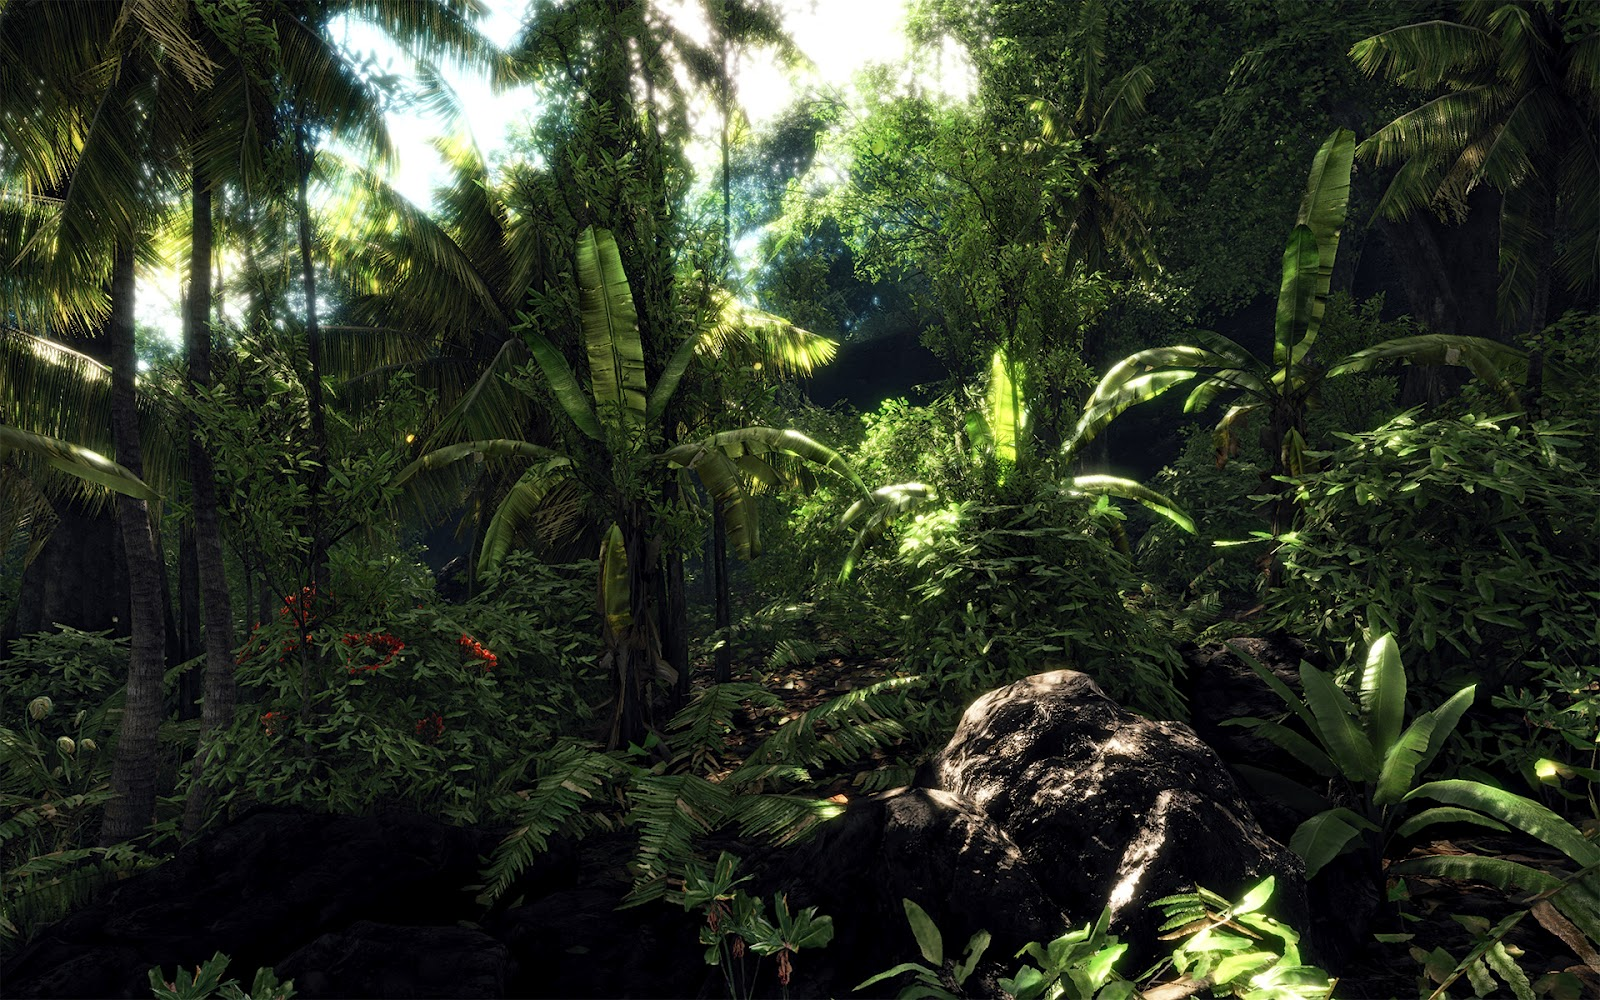 http://1.bp.blogspot.com/-gohjvAfgVr8/UAUZX3vI7sI/AAAAAAAABN0/VLQm4mon2p0/s1600/crysis+jungle+sceneary+landscape+map+wallpaper+background+crytek+frankfurt+fps+first+person+shooter.jpg